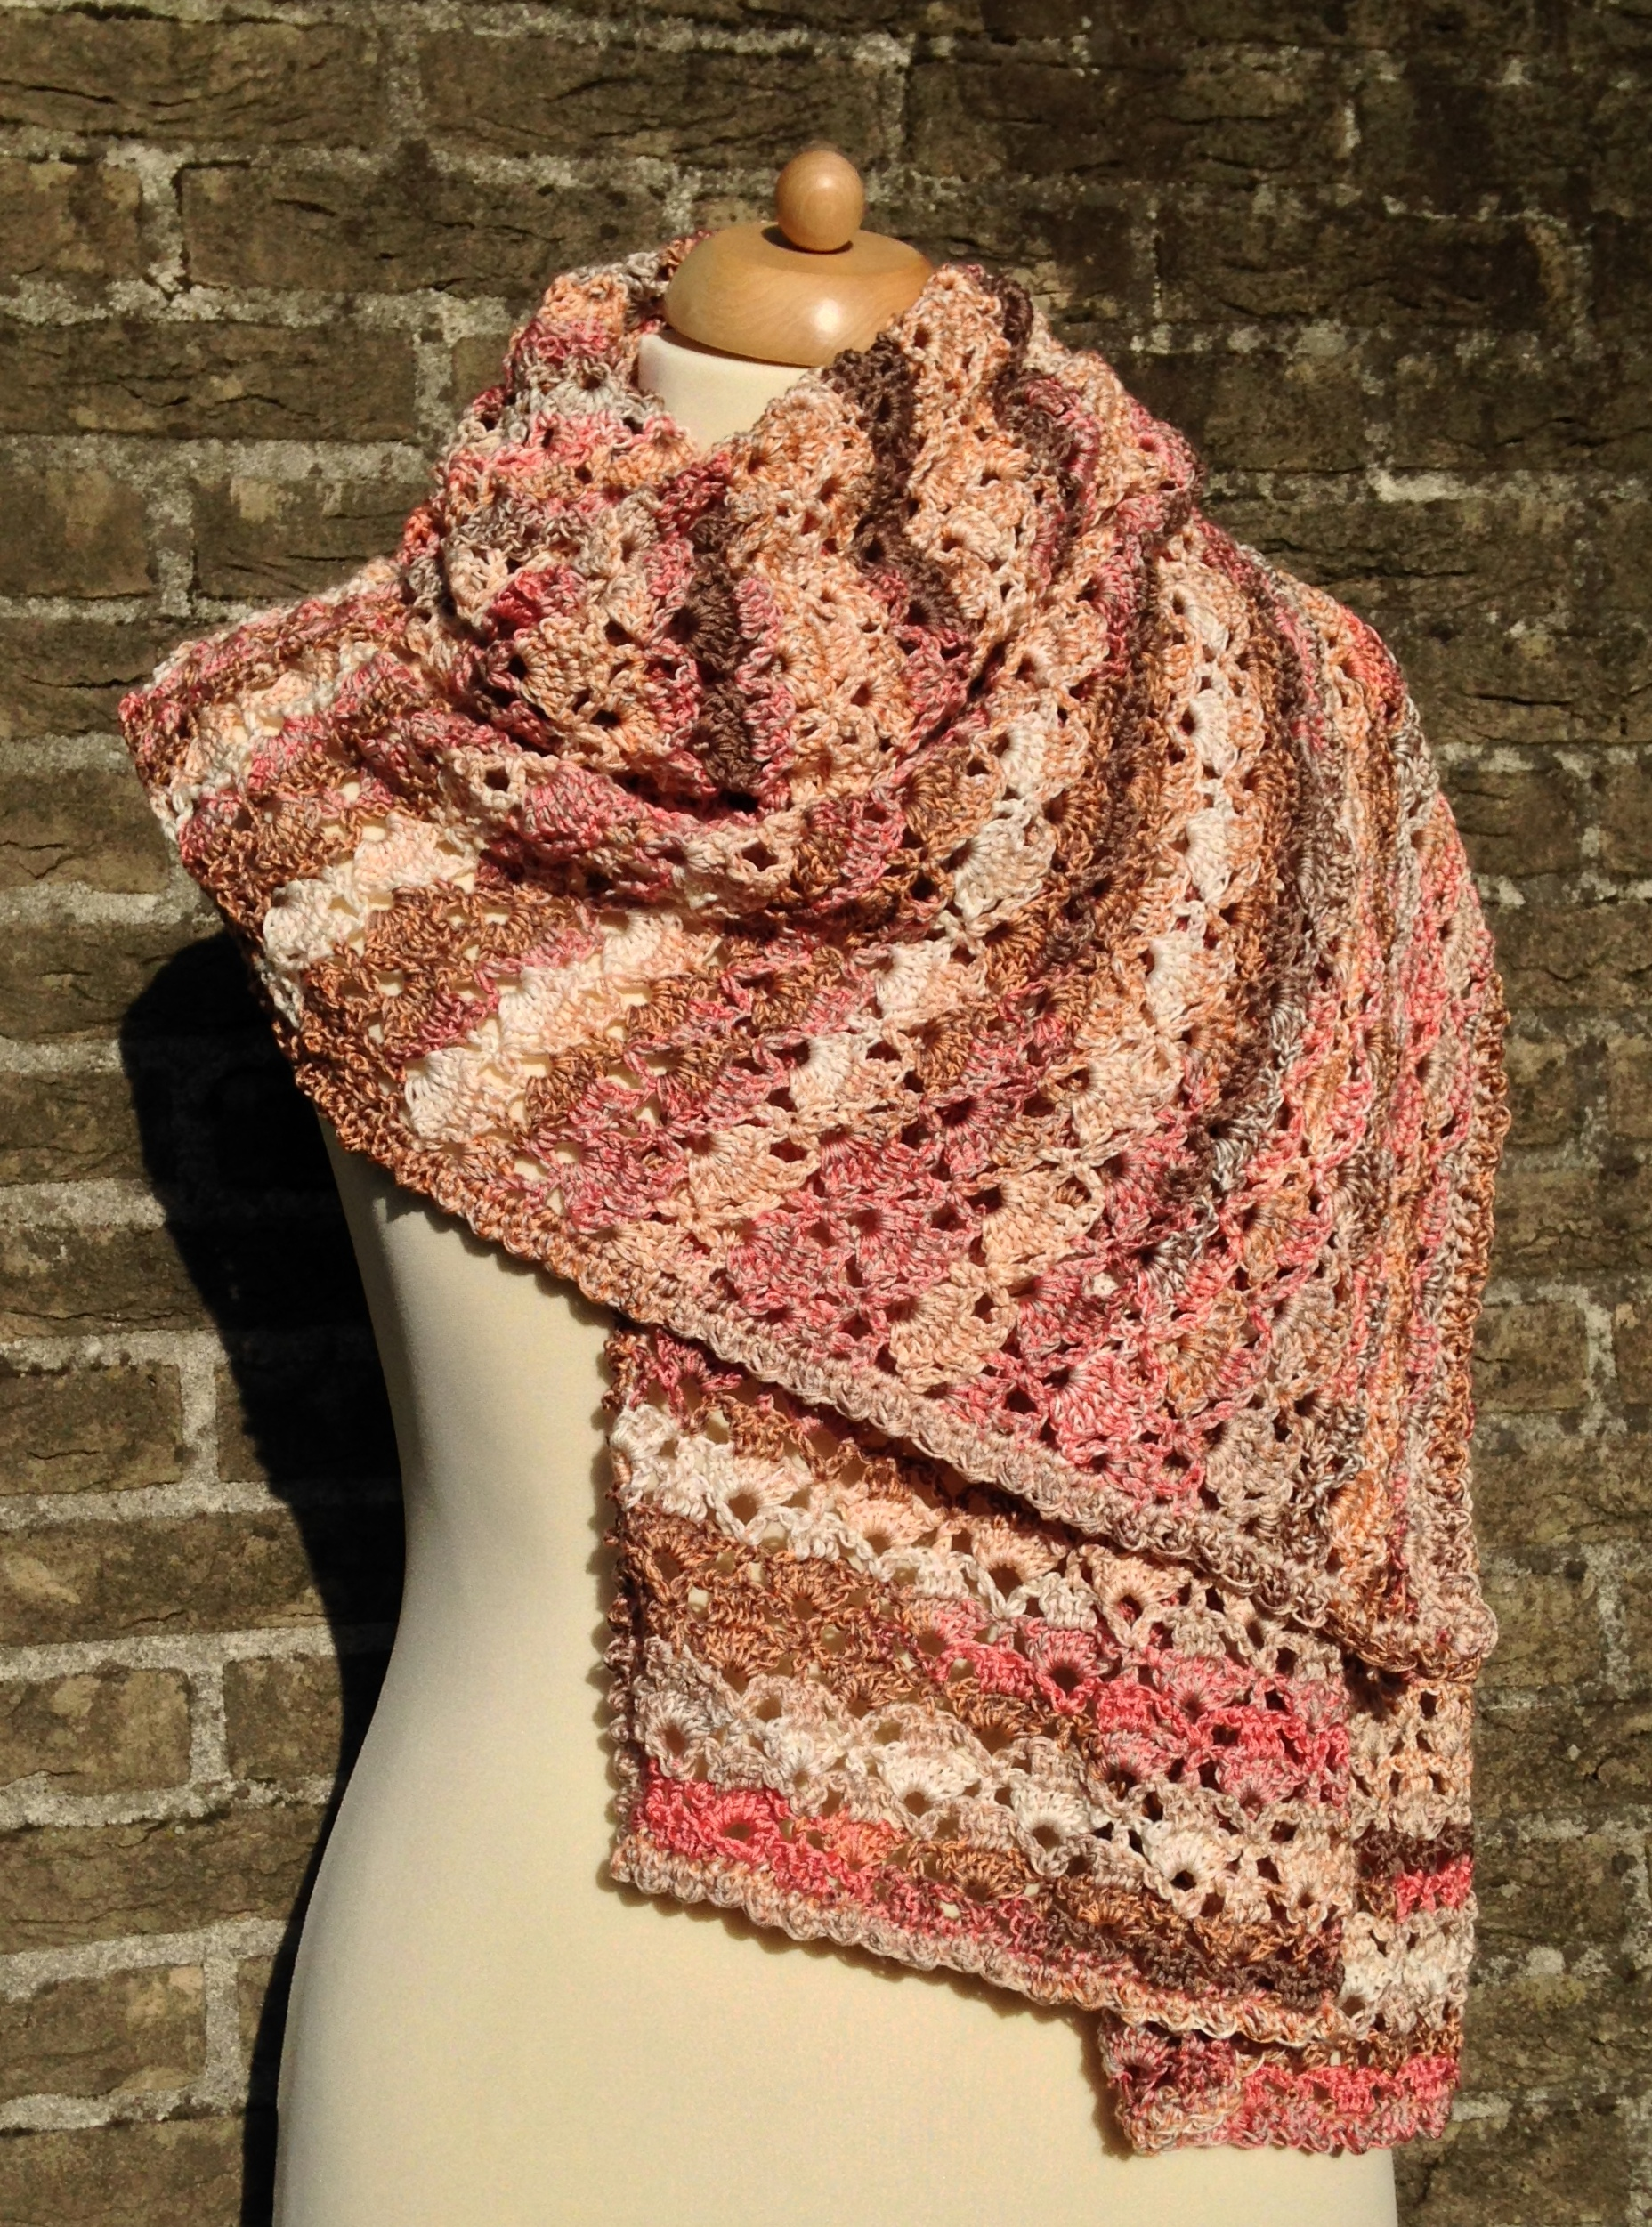 shawl | maRRose CCC | Page 2